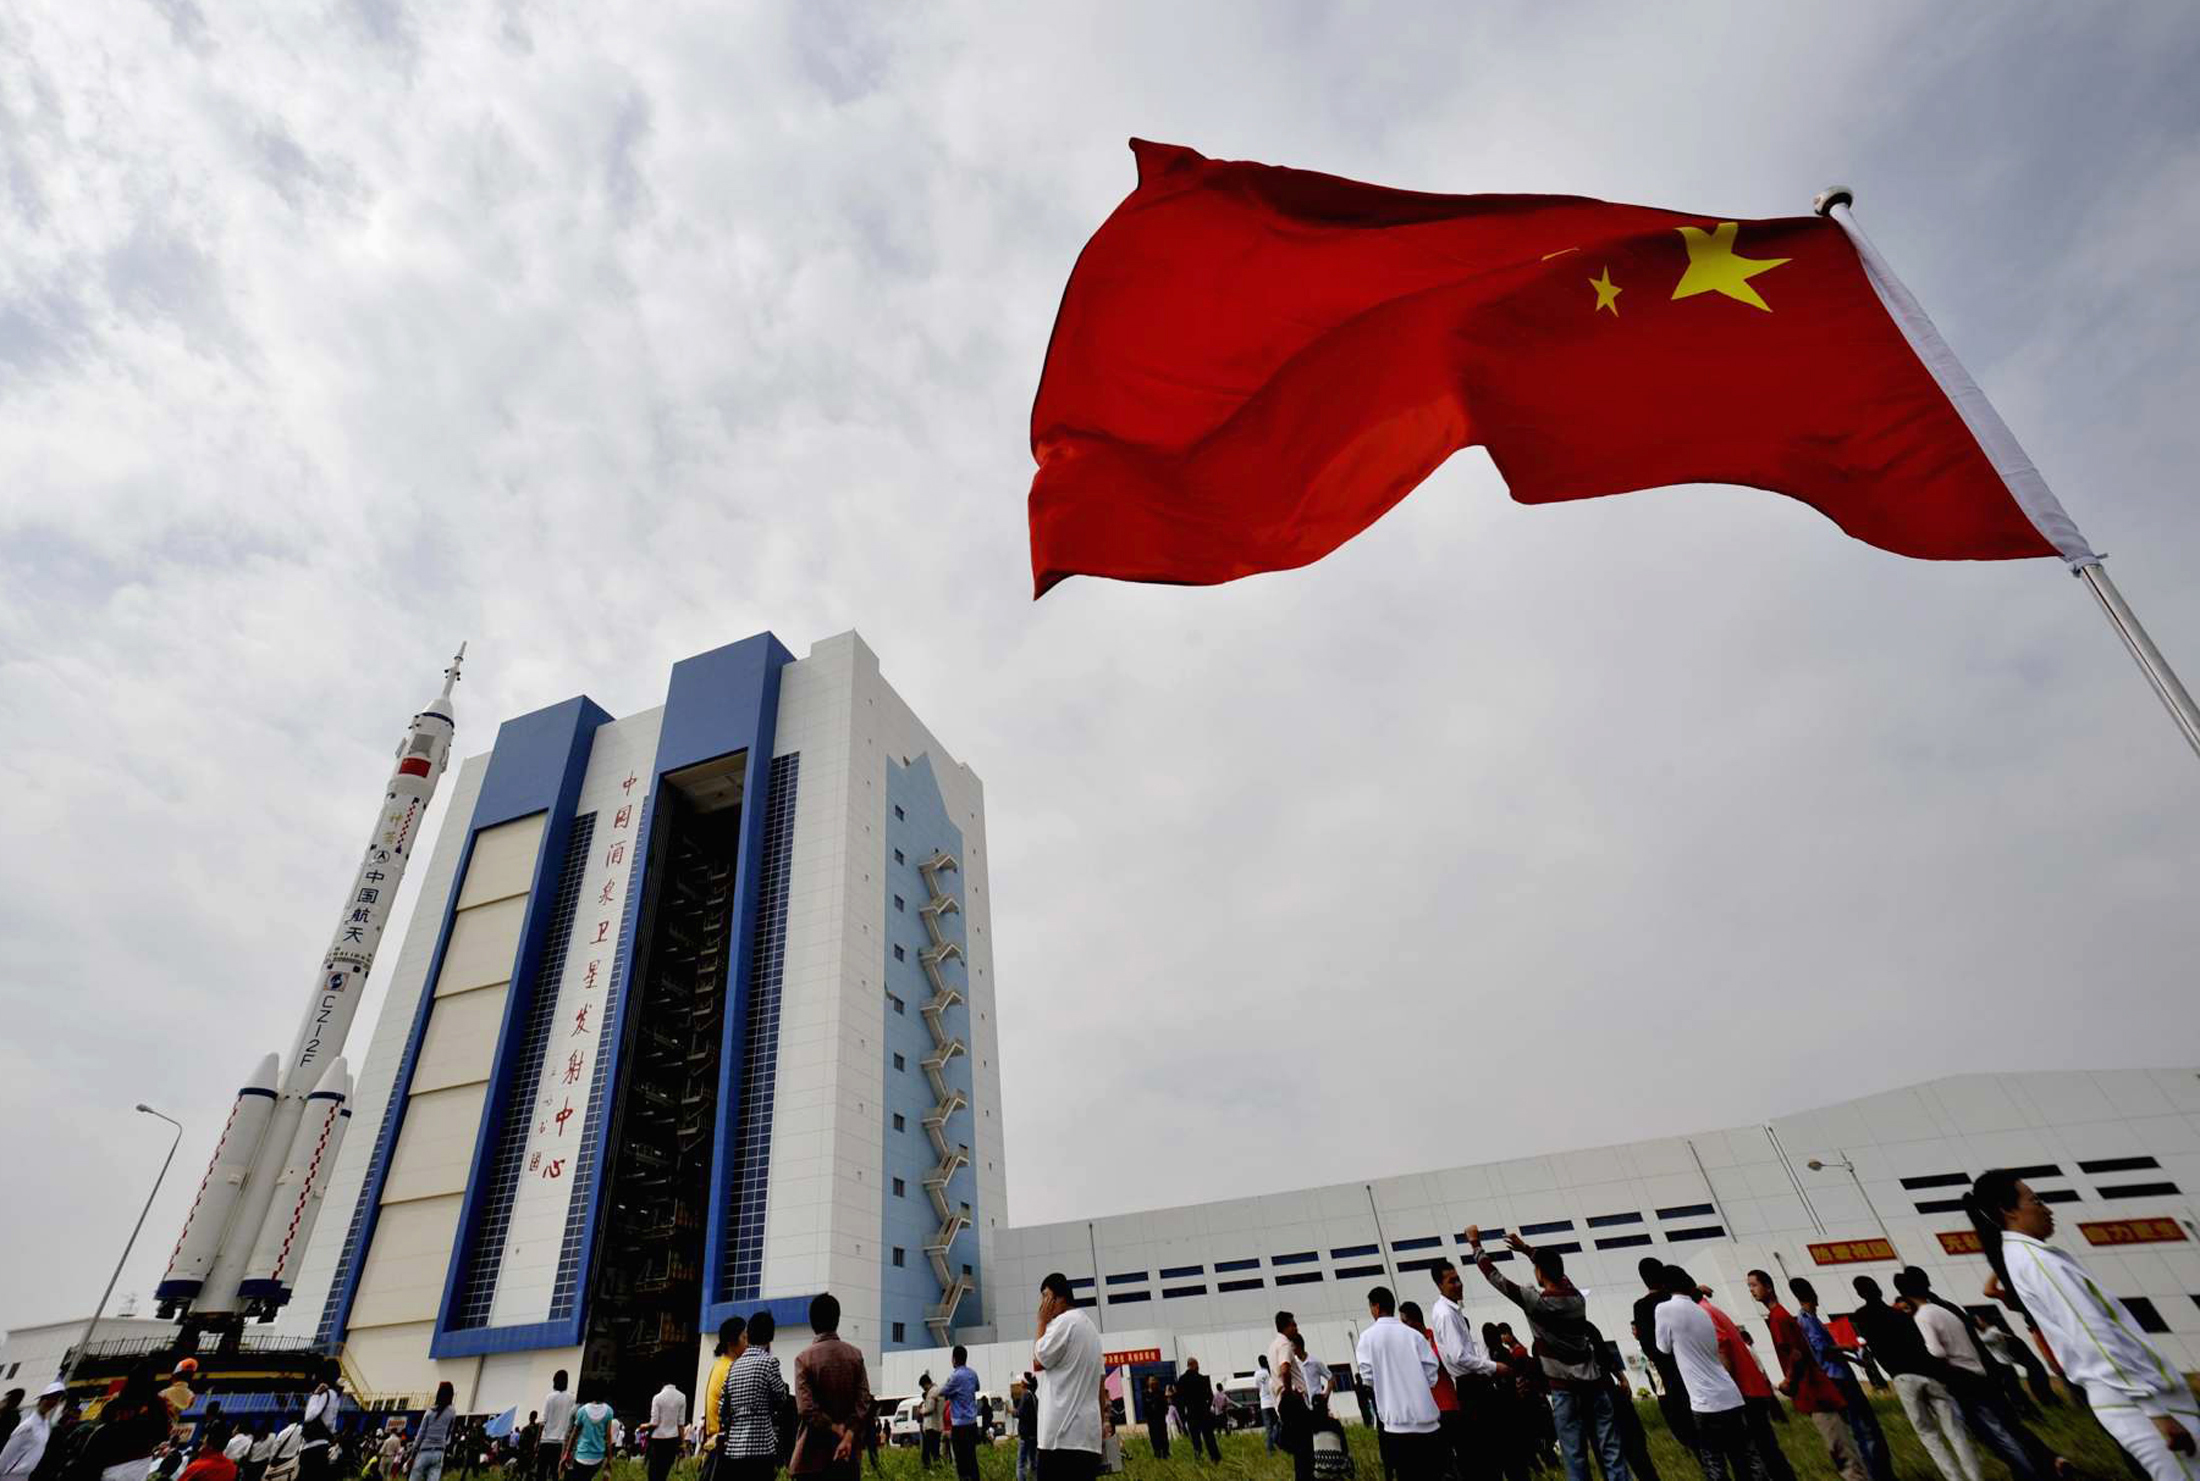 The Shenzhou-7 manned spaceship, the Long-March II-F rocket and the escape tower are transferred to the launch pad at the Jiuquan Satellite Launch Center, Gansu province September 20, 2008. Astronauts readying for China's next leap into space have arrived at the launch site of the Shenzhou 7 craft, official media reported, as enthusiasm grew over the Olympic host nation's next attention-grabbing feat. Picture taken September 20, 2008. REUTERS/China Daily